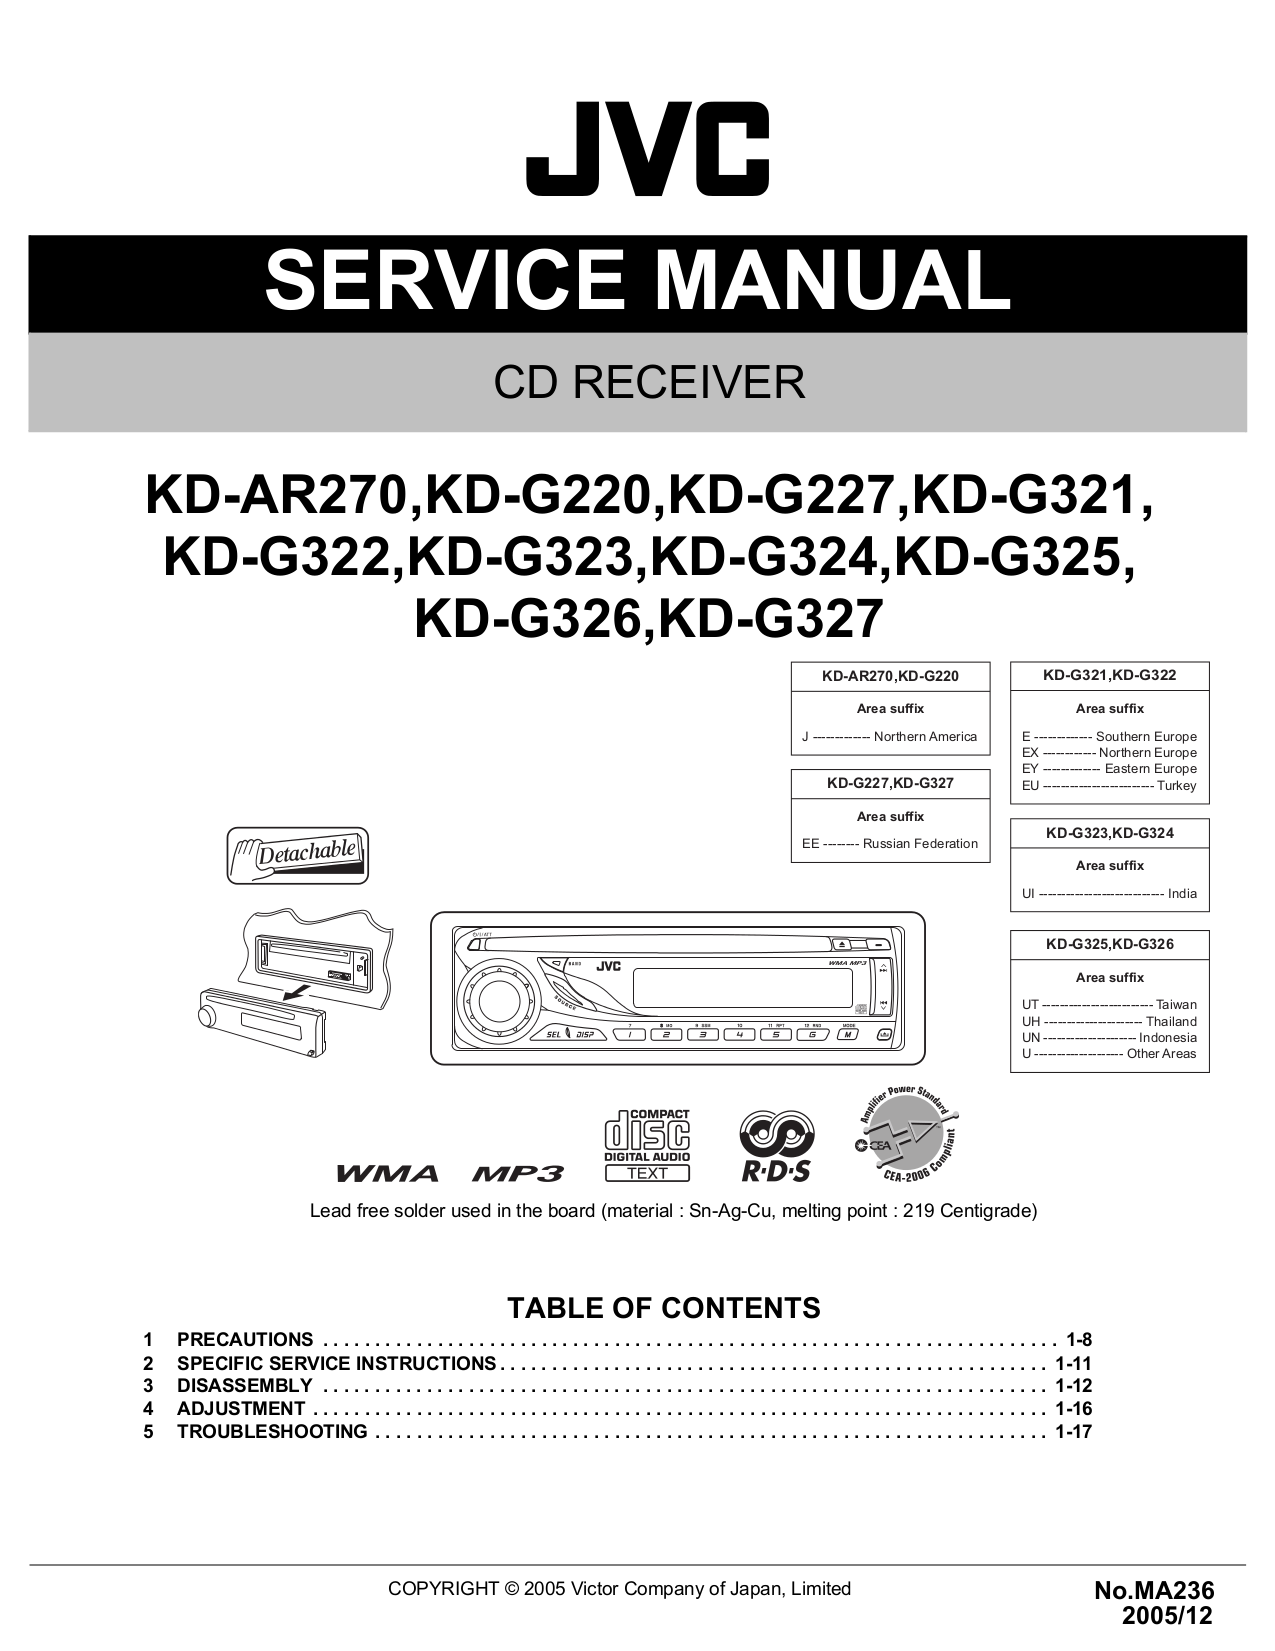 301398d1352582317 Magnitola Avtozvuk jvc kd ar270 kd g220 g227 g321 g322 g323 g324 g325 g326 g327.pdf 0 pdf manual for jvc car receiver kd s51 jvc kd r320 wiring diagram at honlapkeszites.co